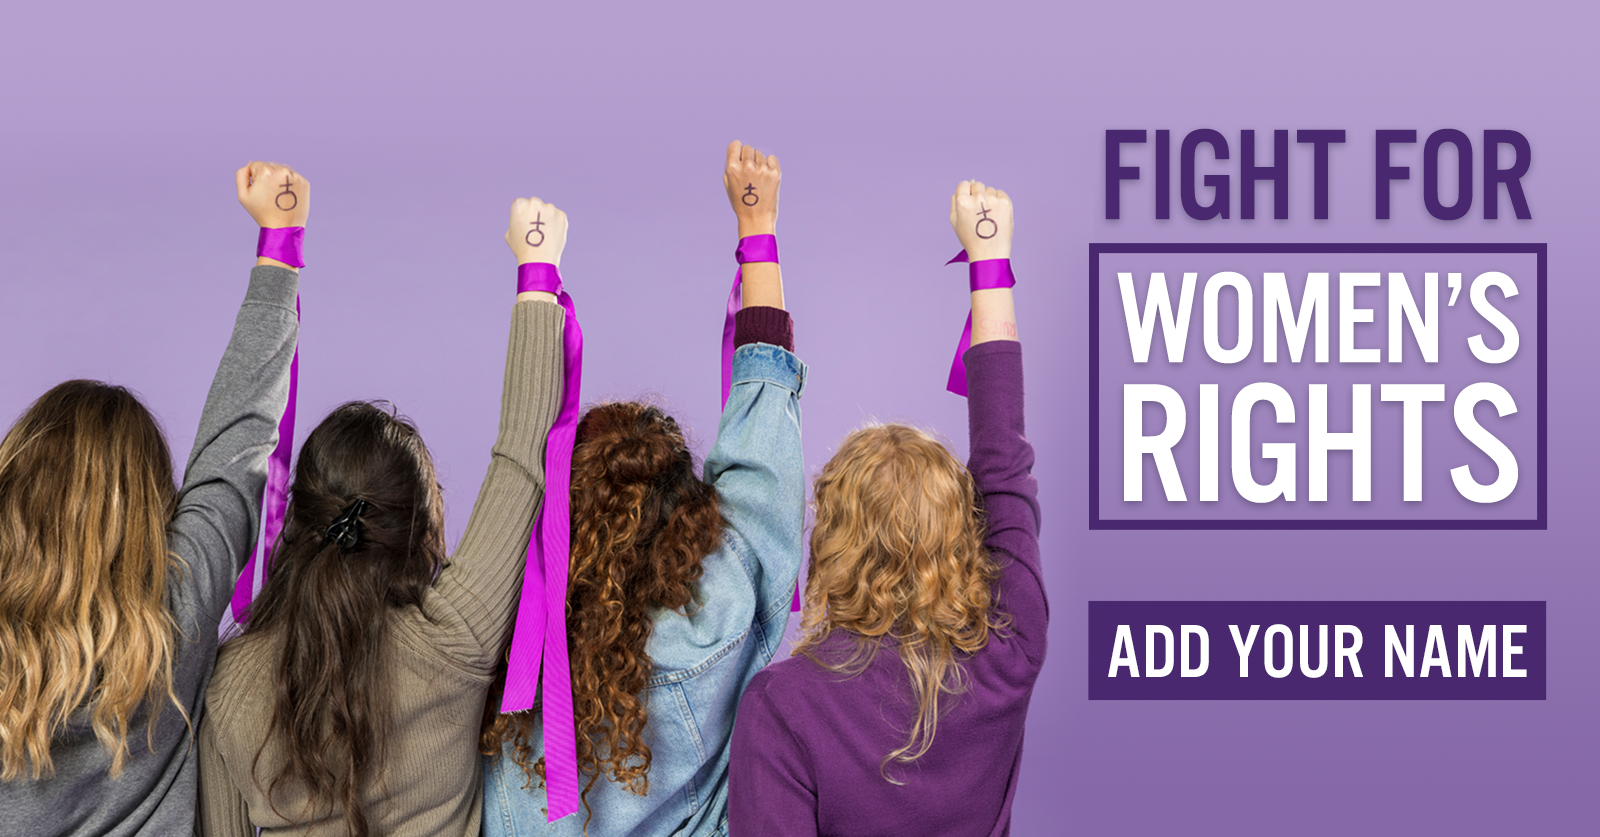 Stand for women's rights